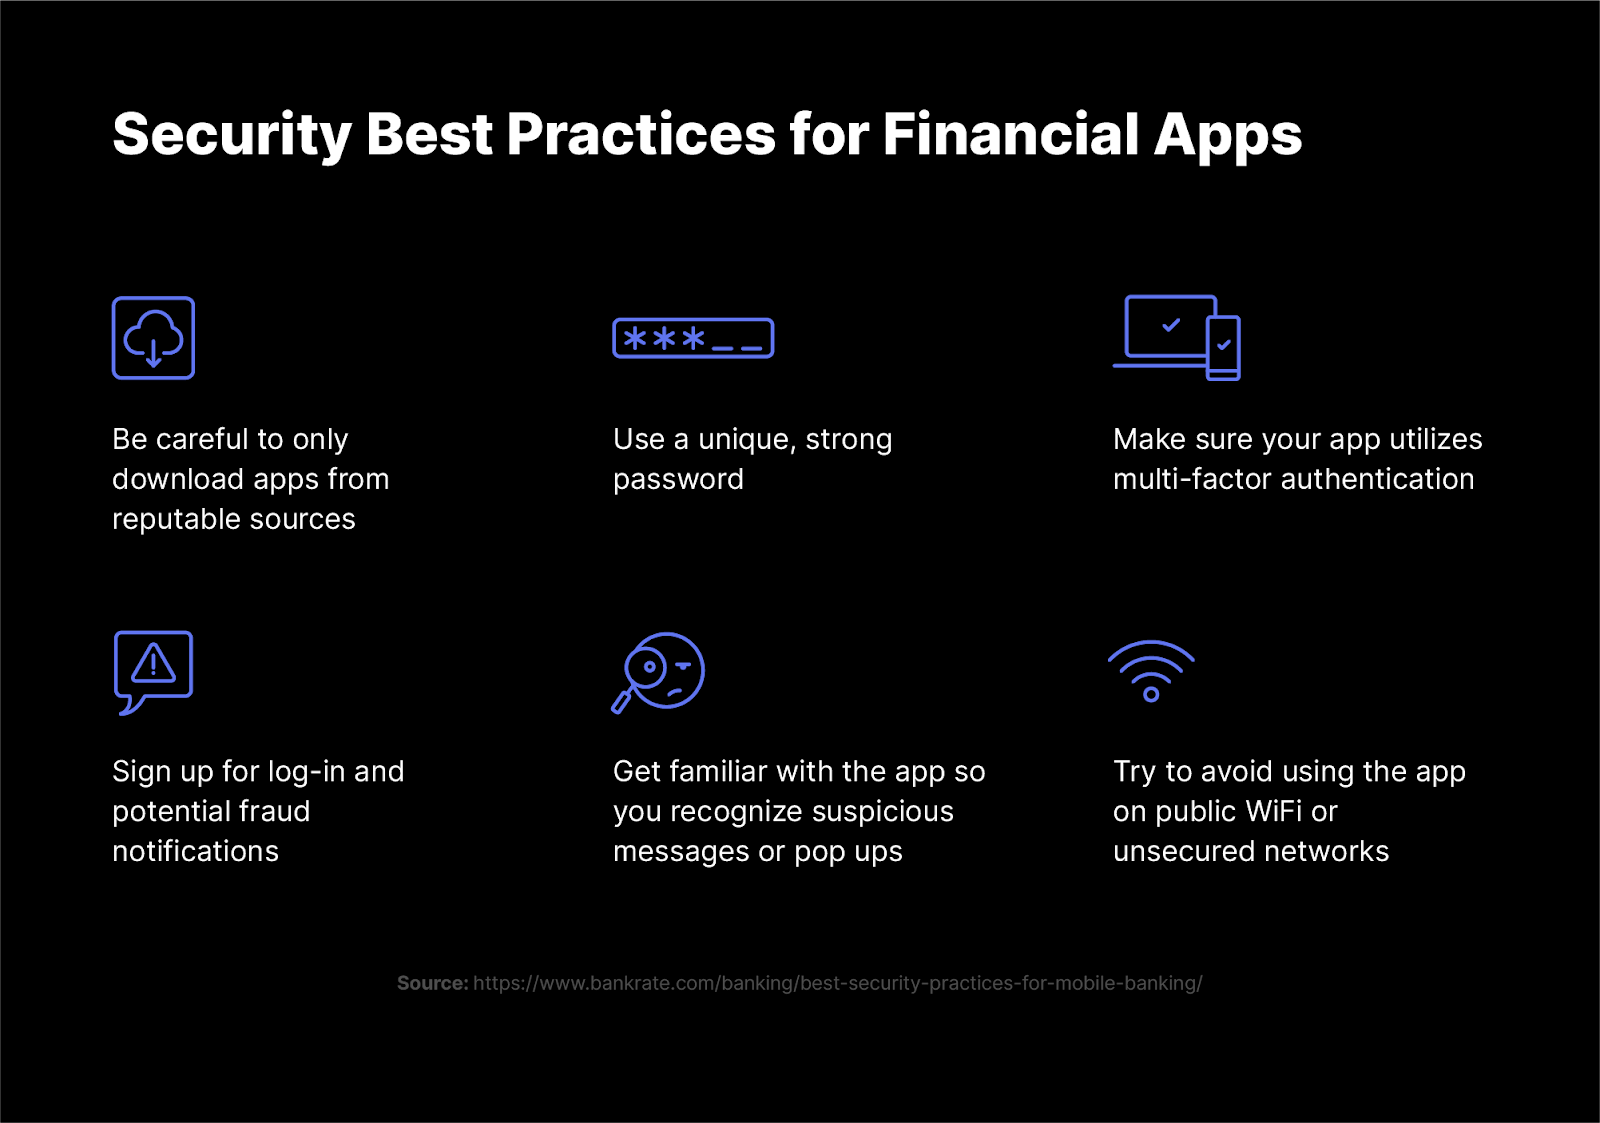 security practices for financial apps